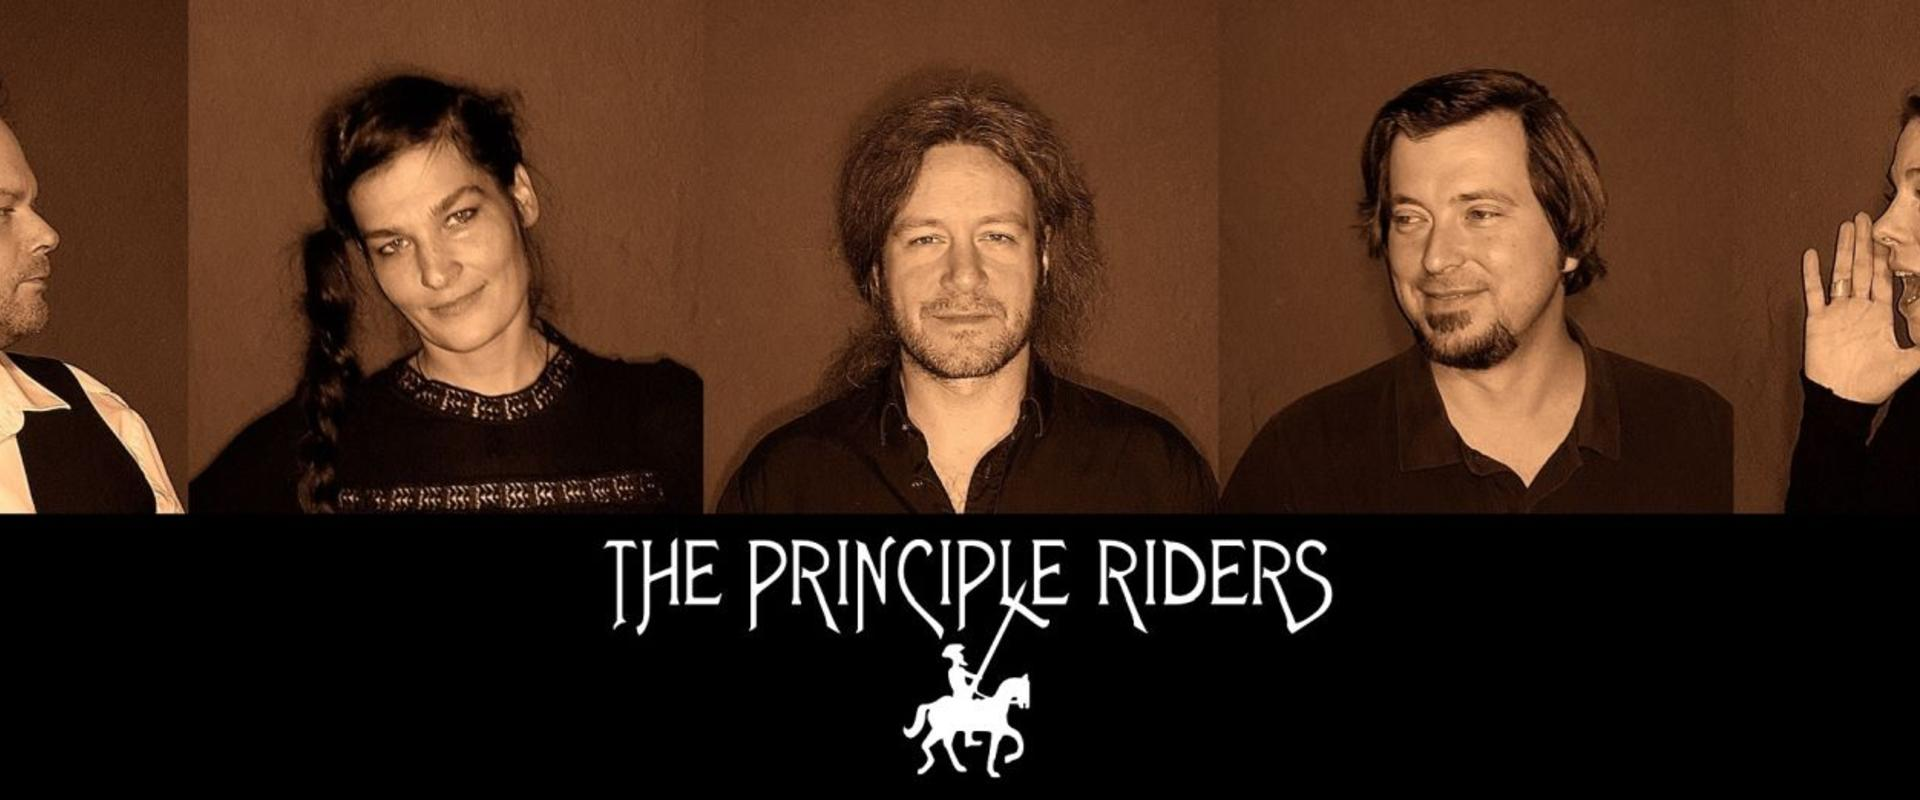 The Principle Riders